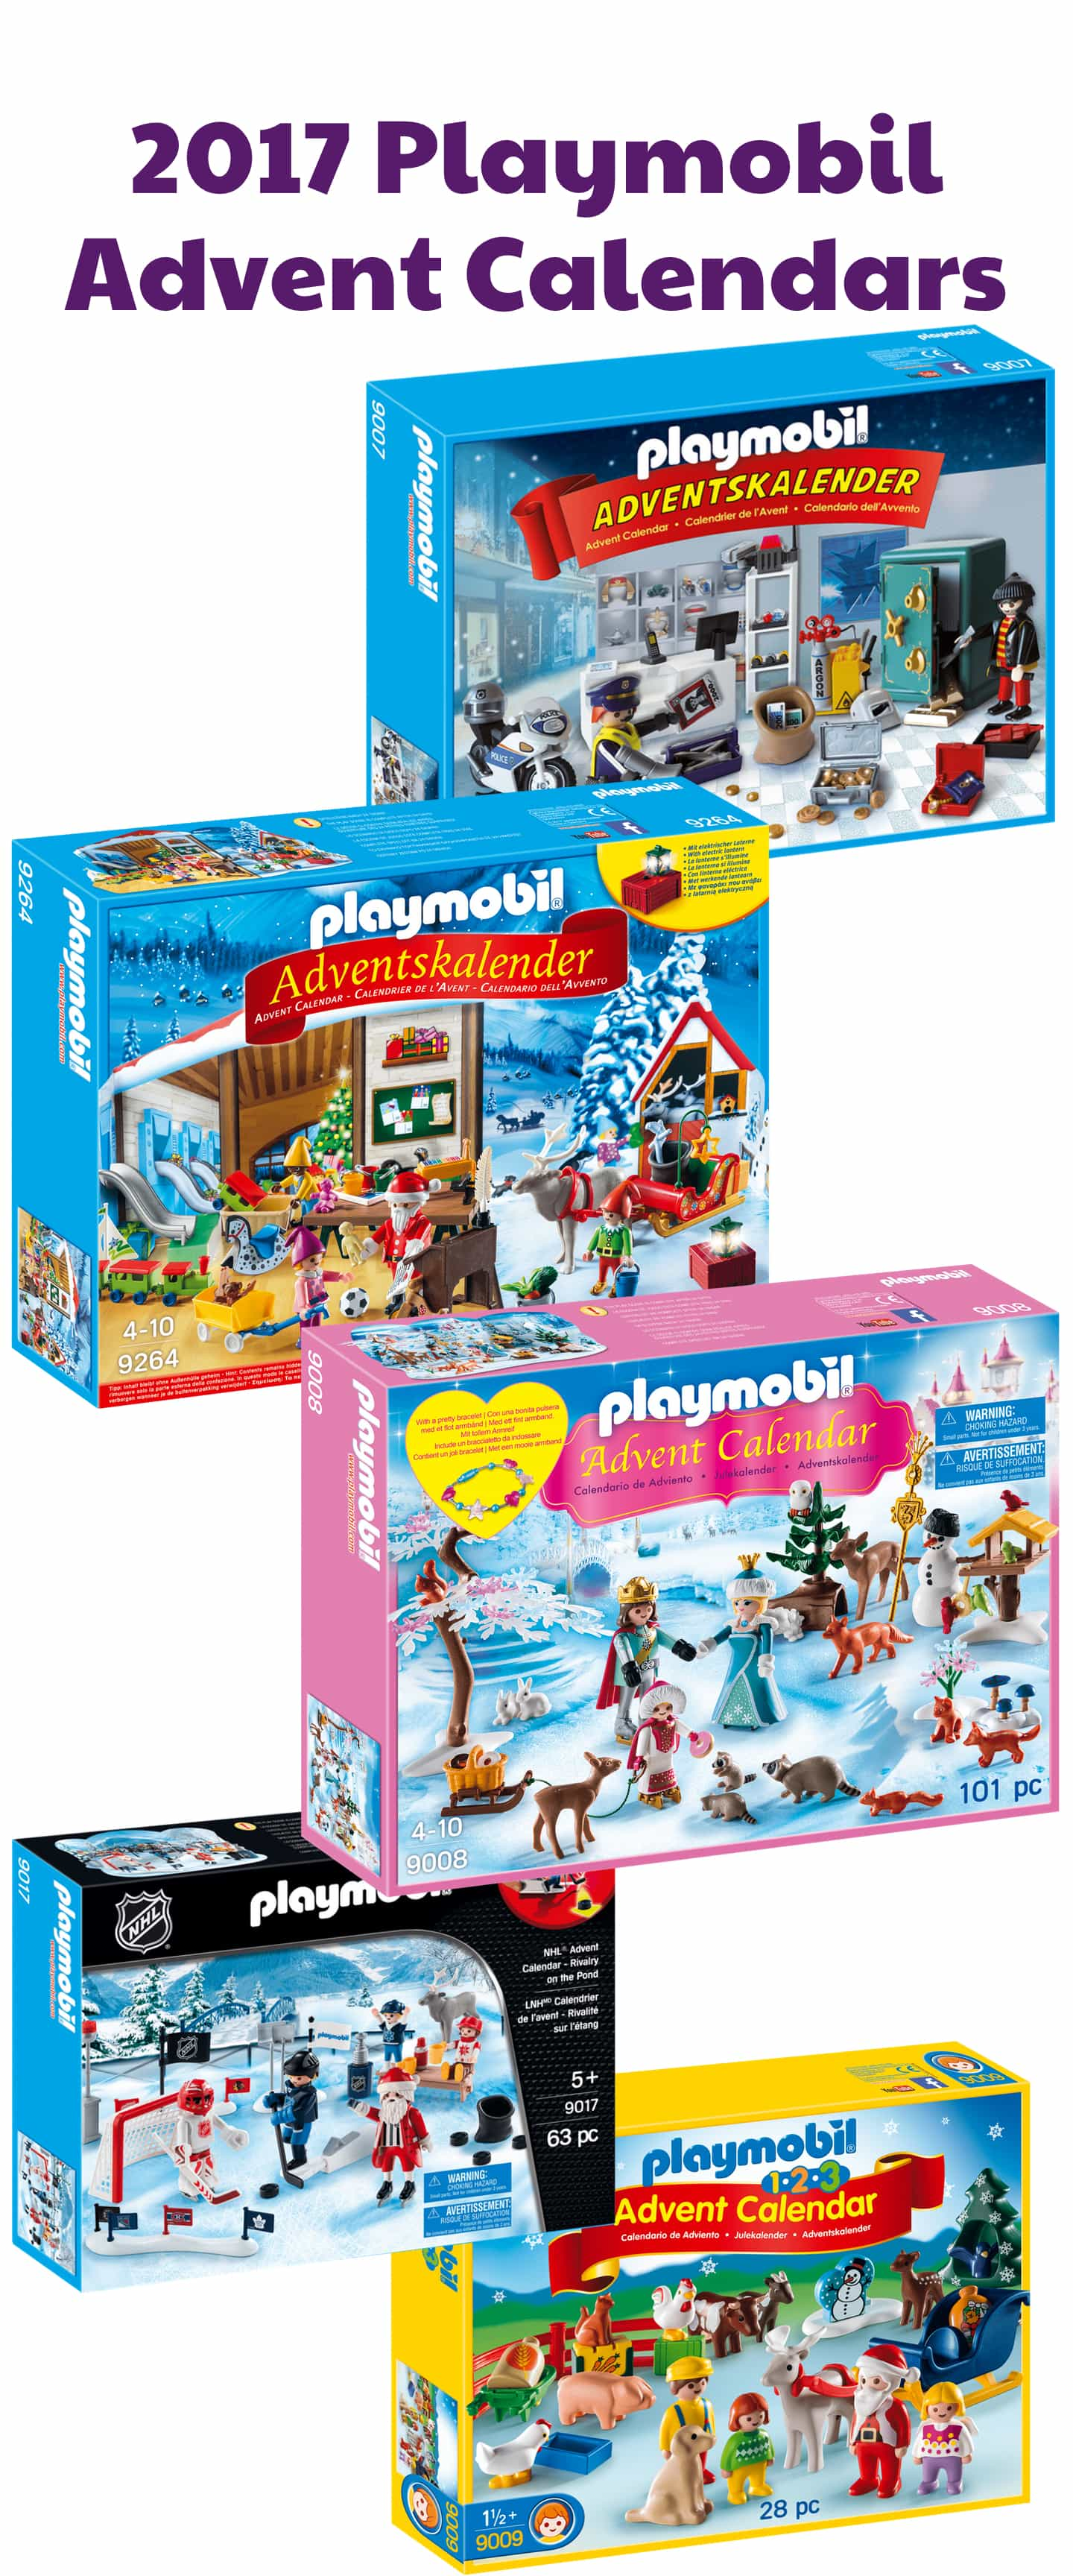 playmobil 2017 advent calendars available now hello subscription. Black Bedroom Furniture Sets. Home Design Ideas